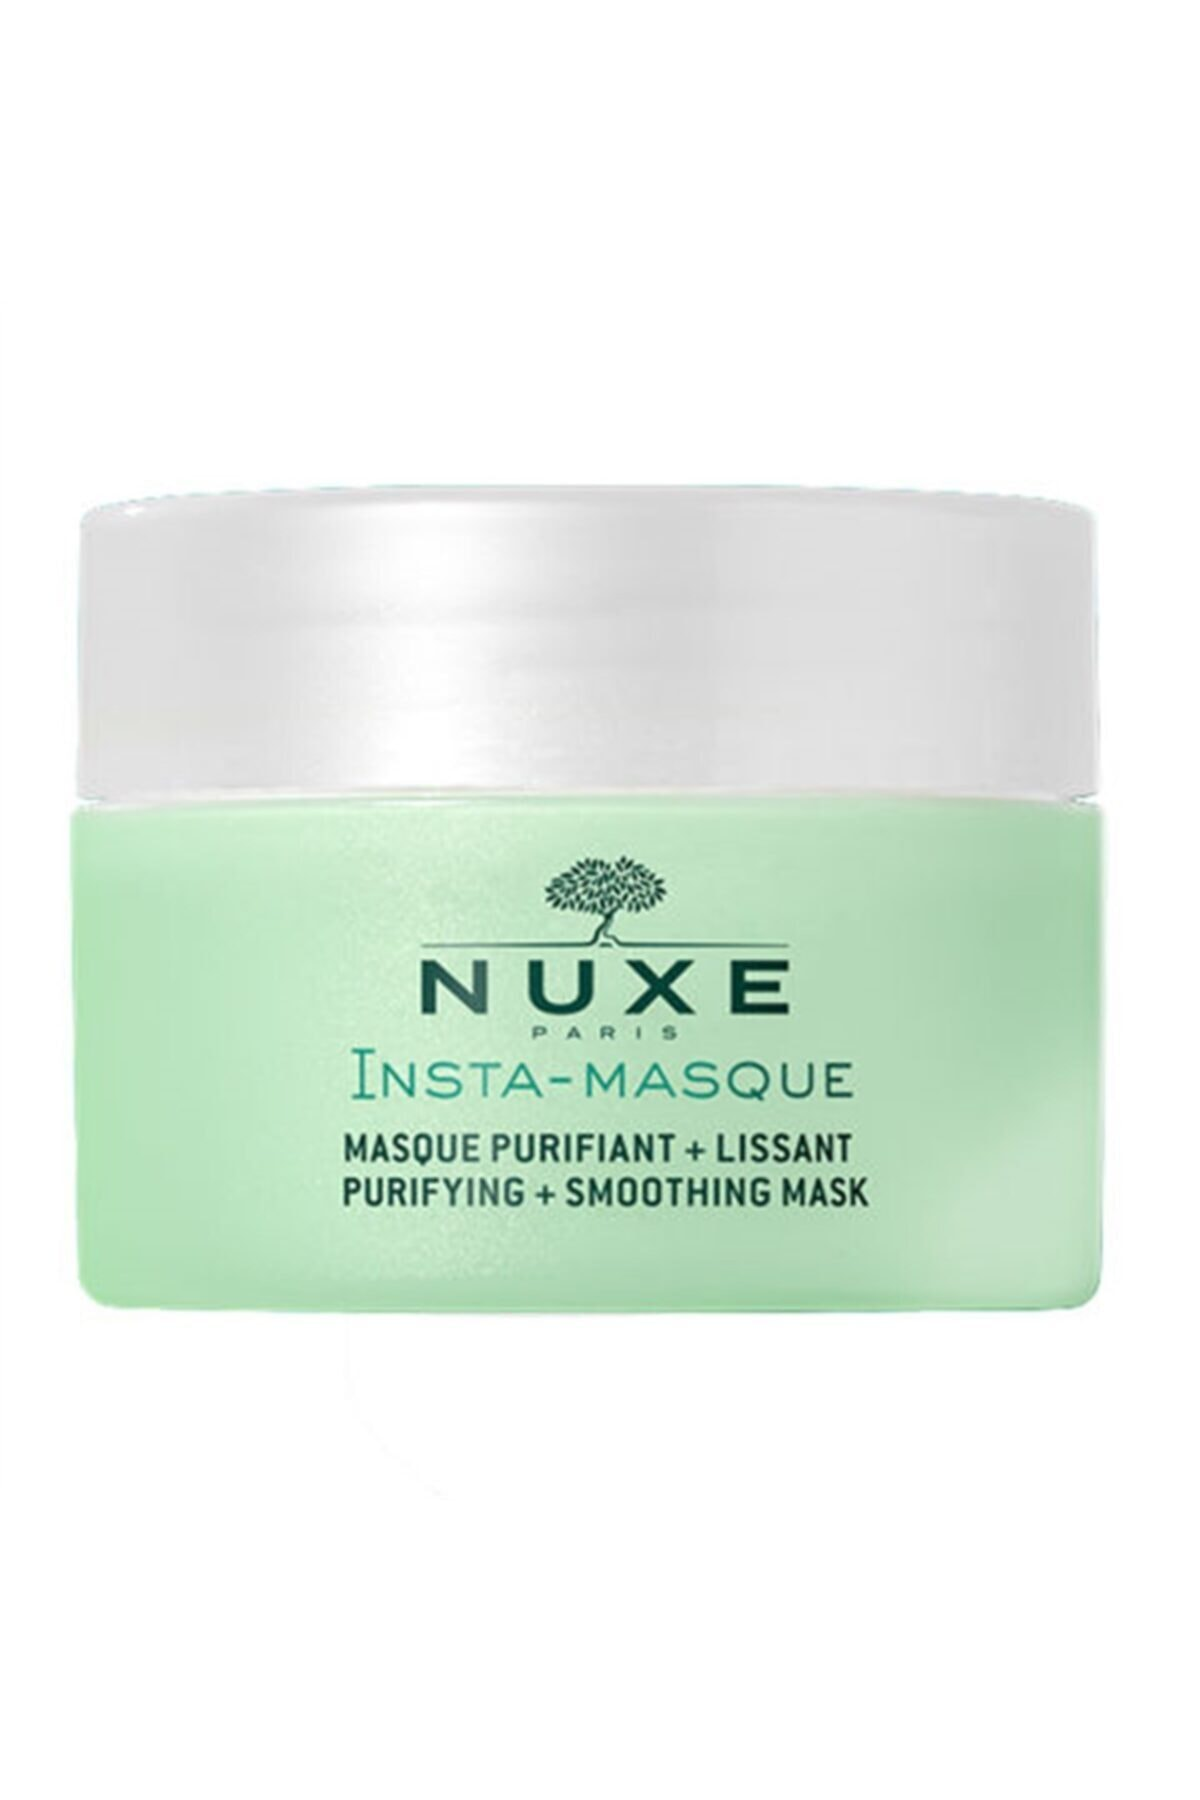 Nuxe Insta-masque Purifying + Smoothing Mask 50ml 1